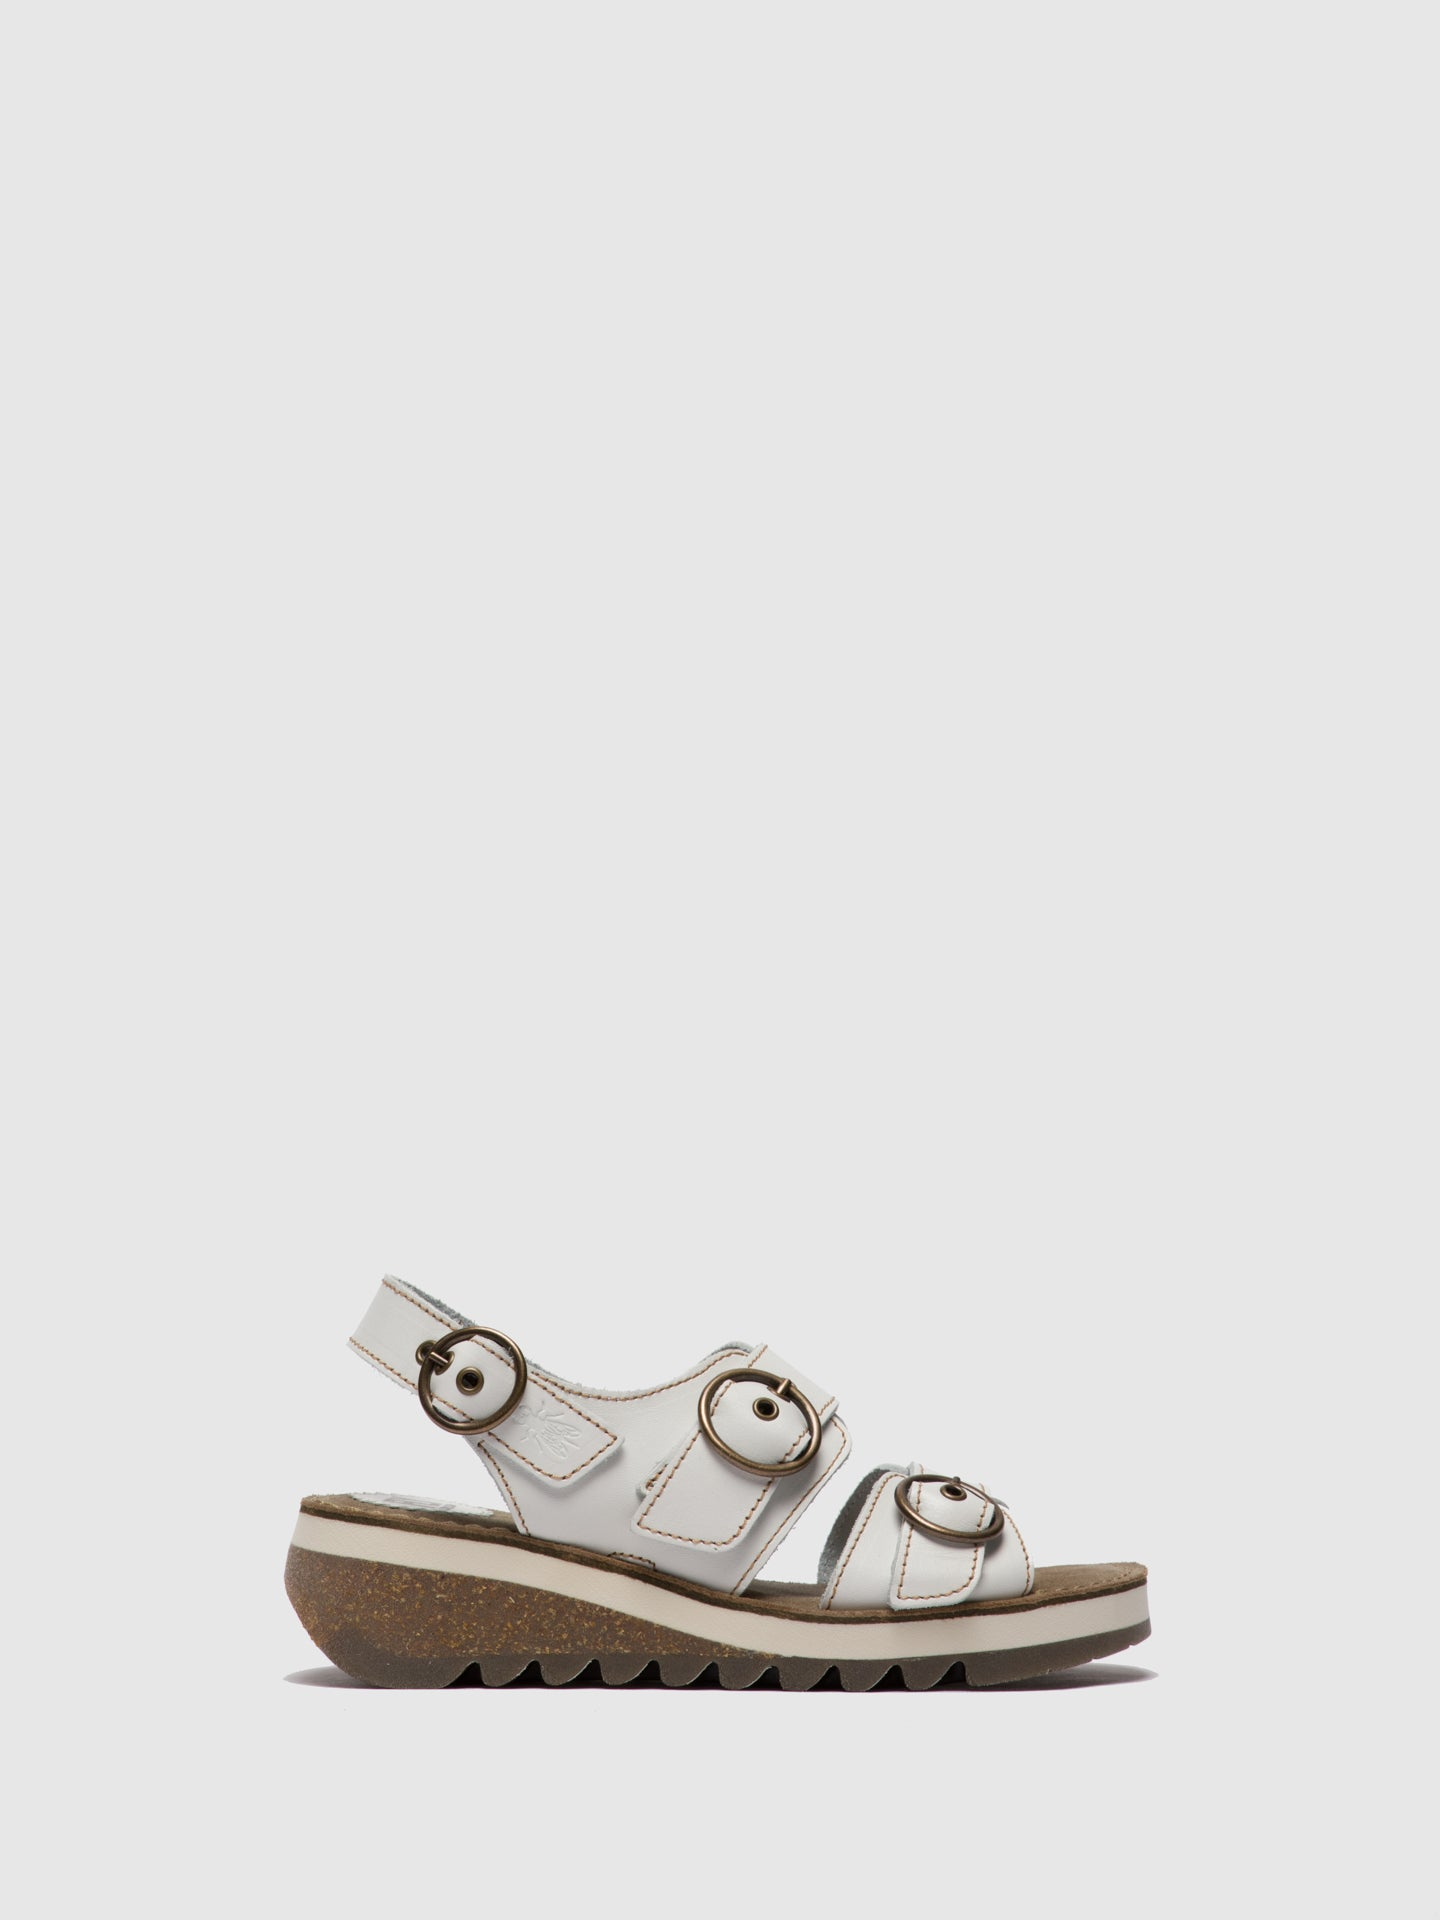 Fly London White Buckle Sandals